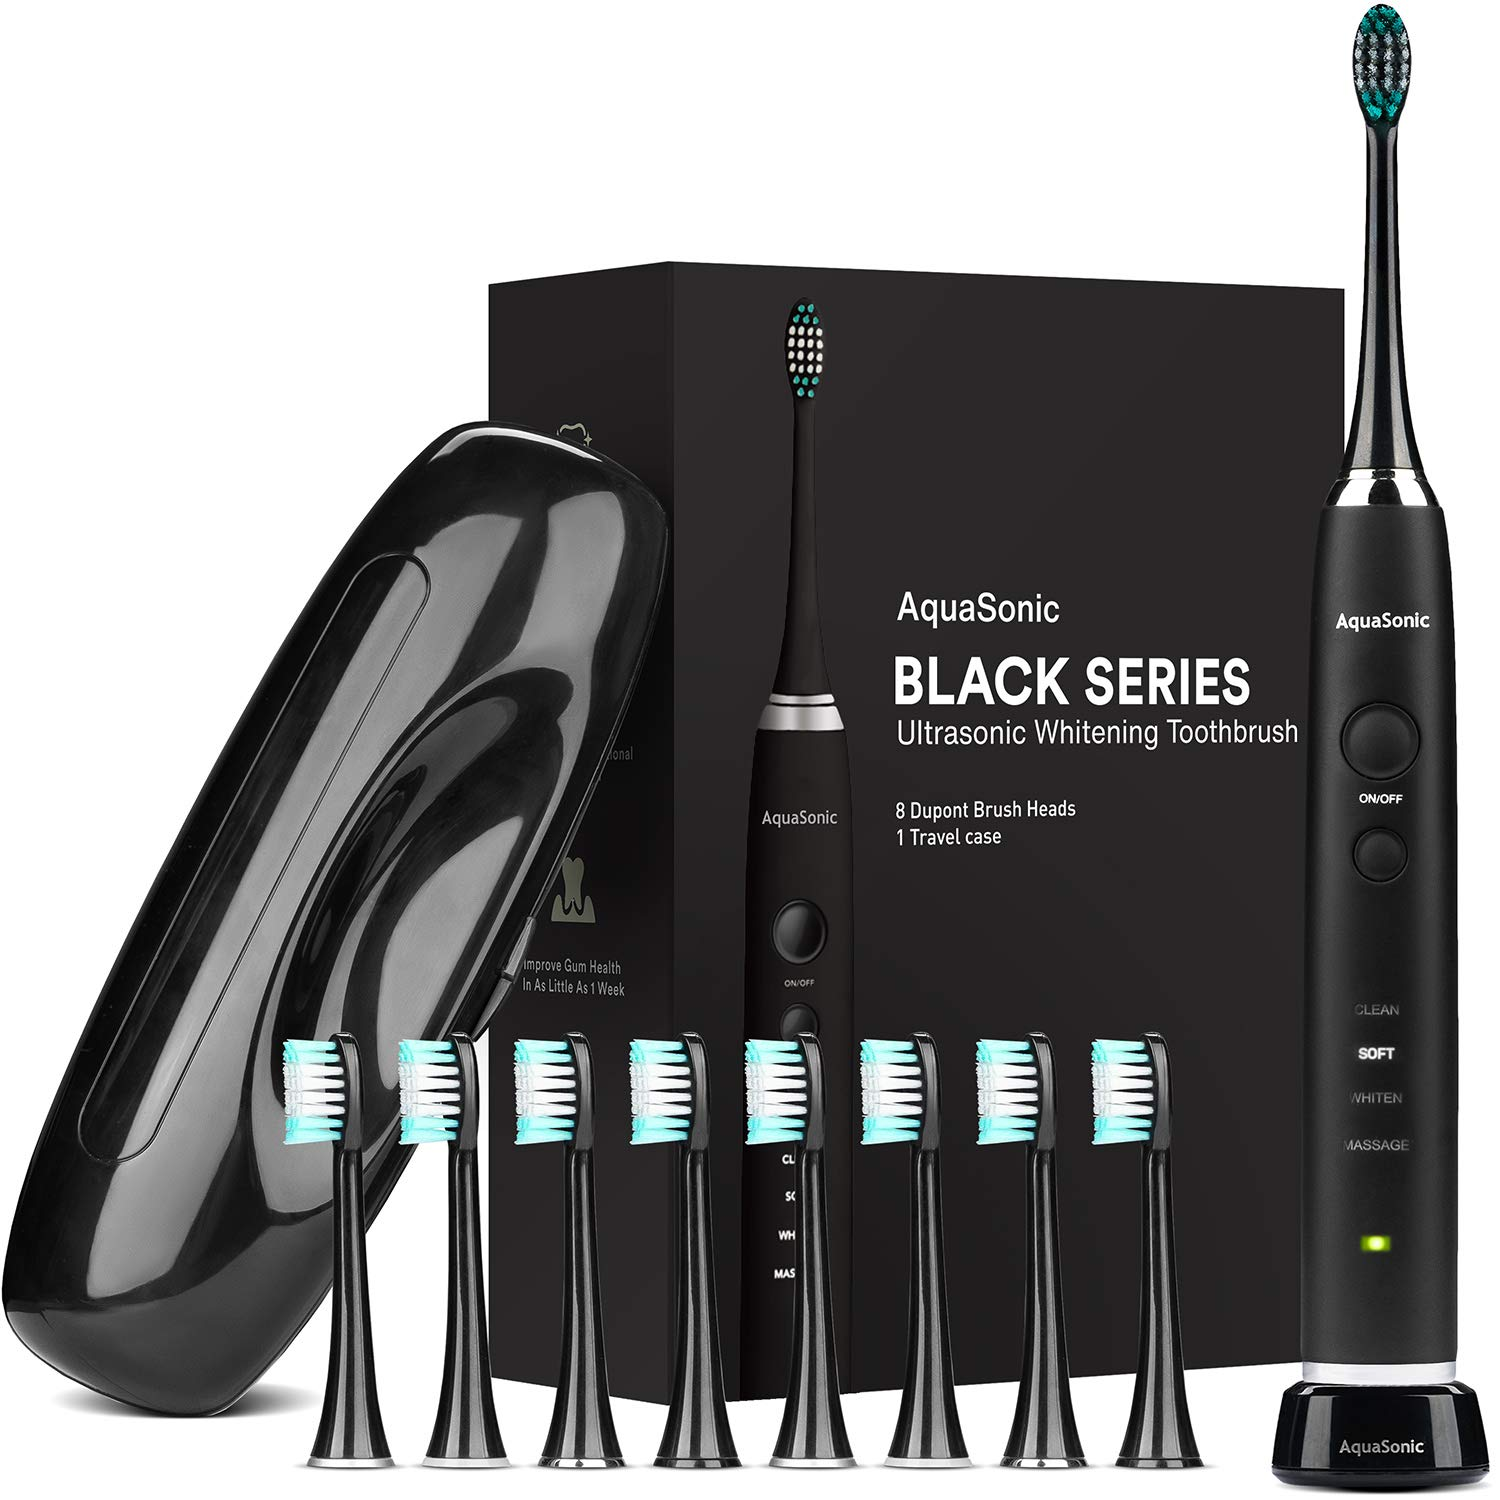 The best electric toothbrush for whitening